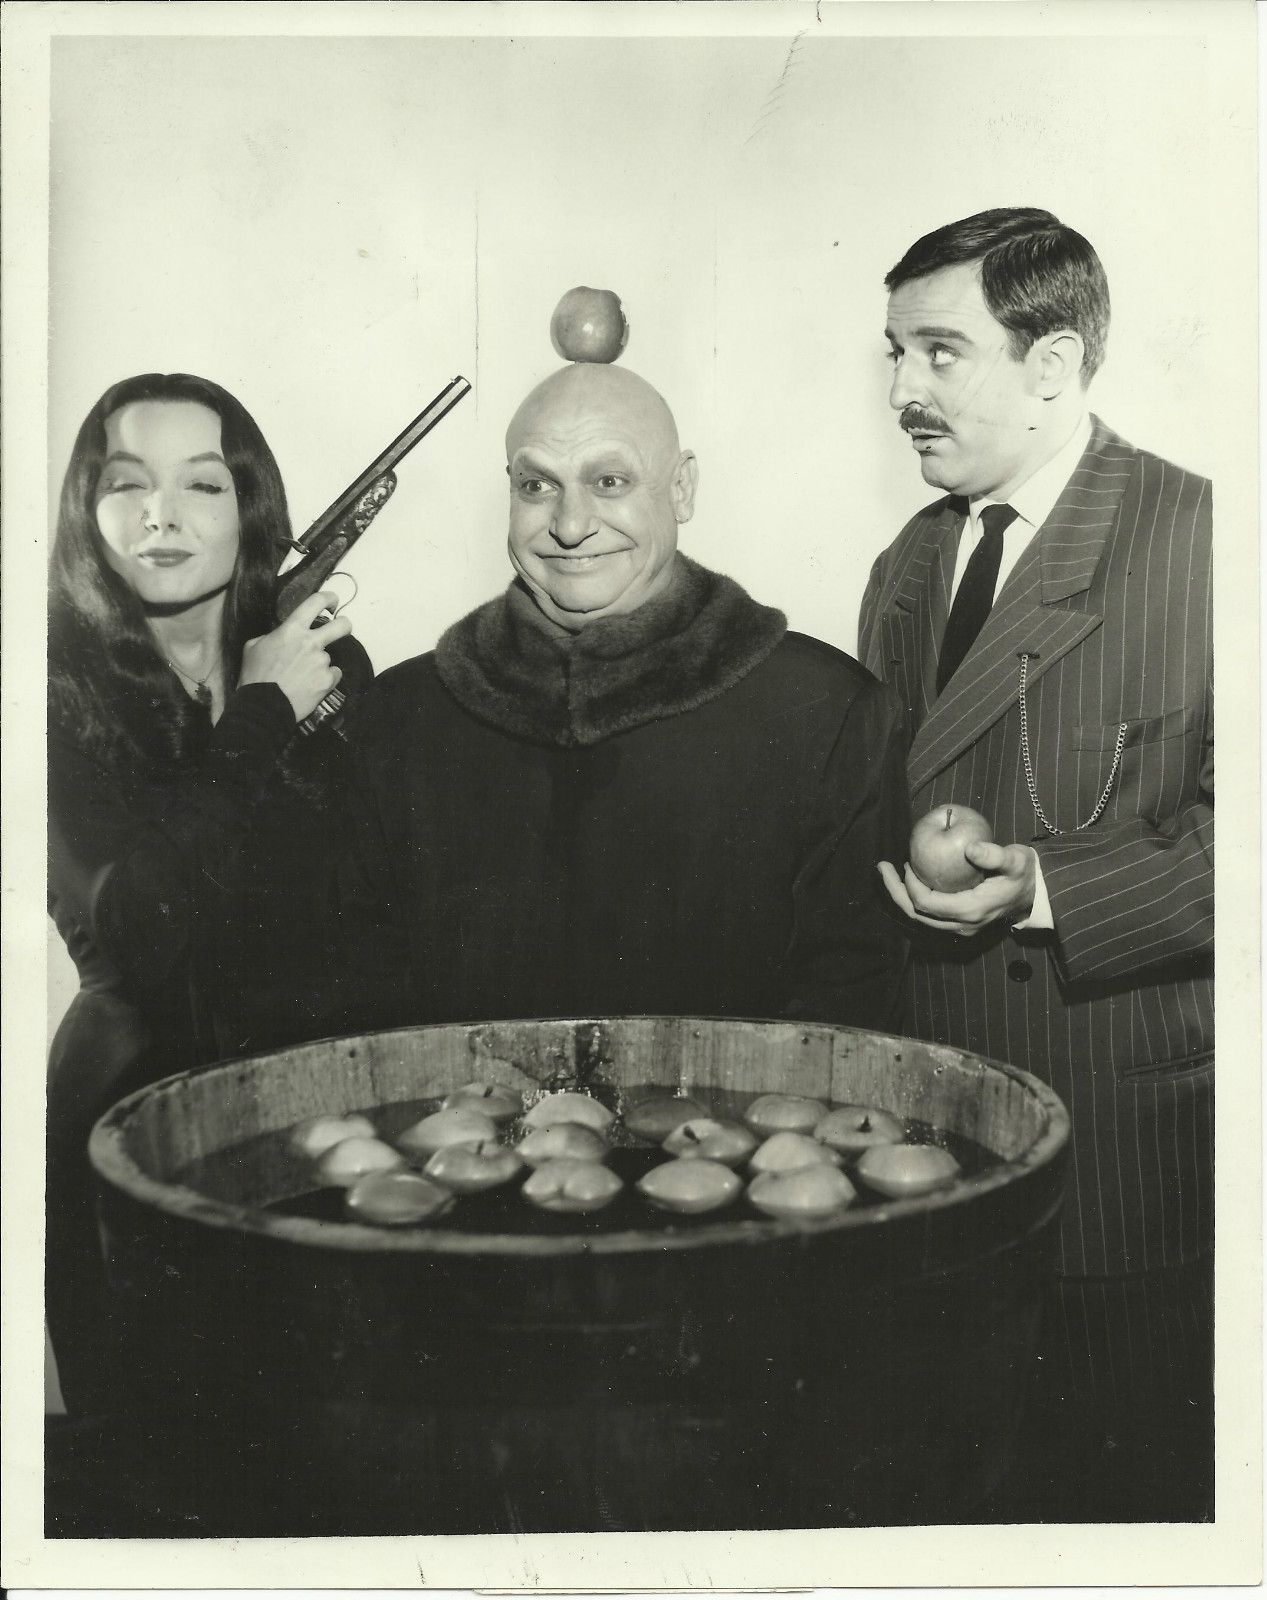 Uncle fester the addams family pinterest - The Addams Family